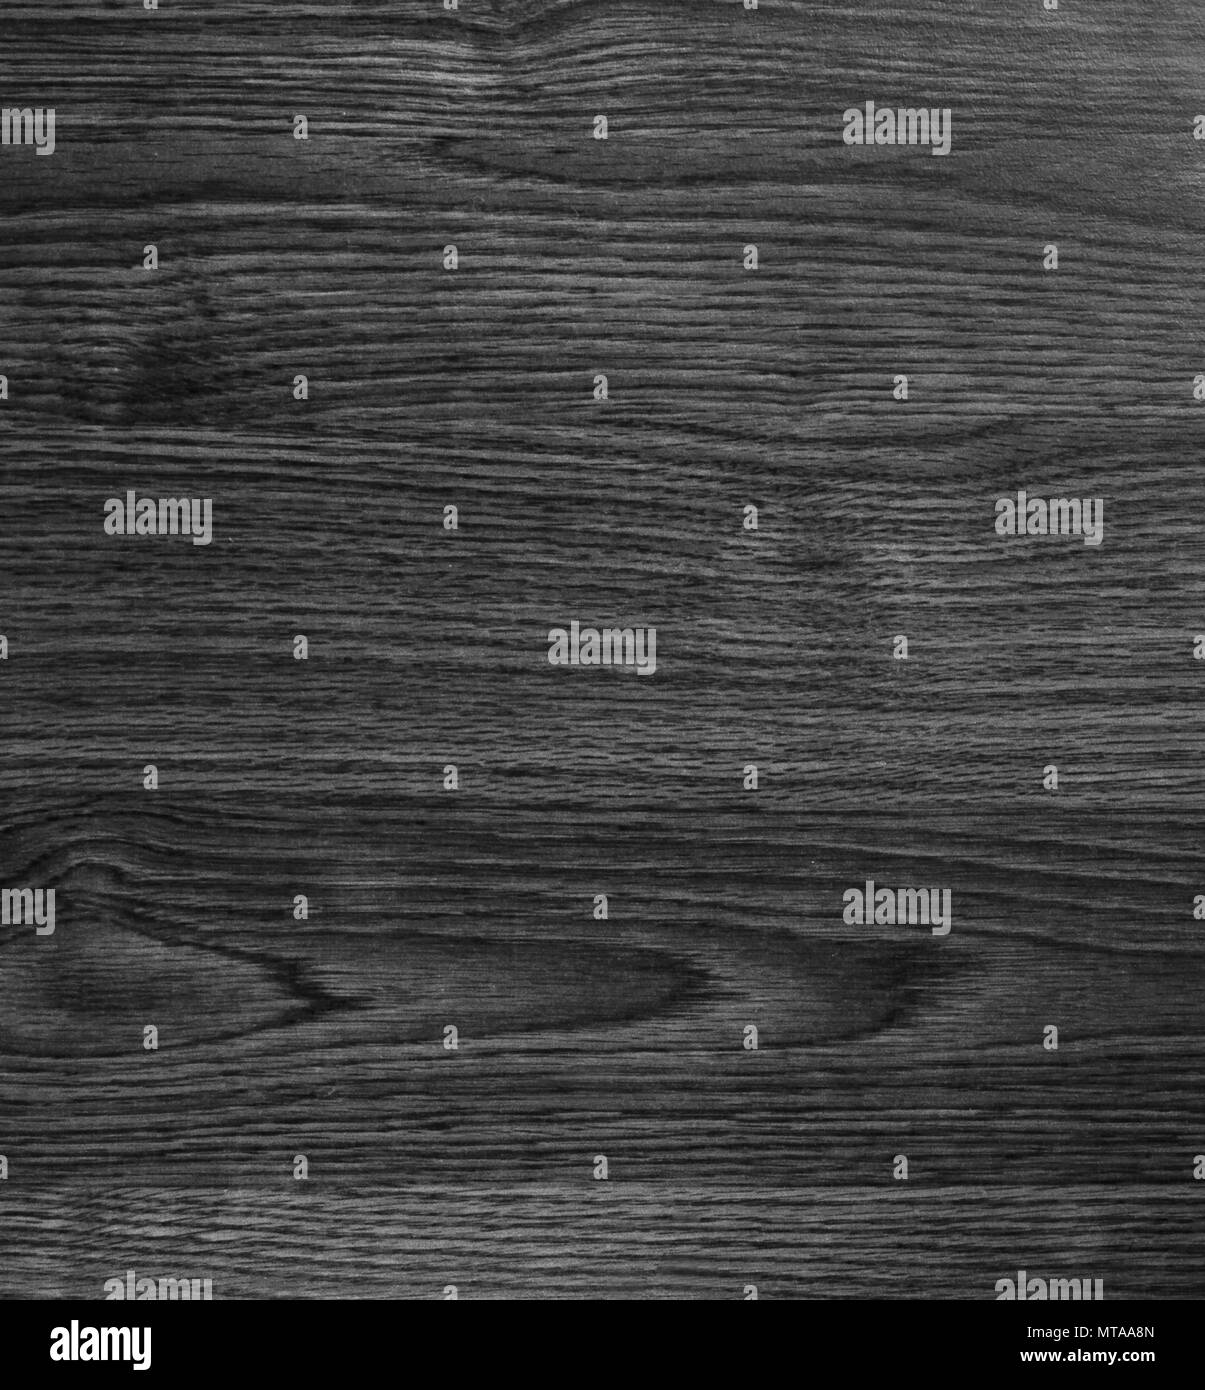 Black wooden texture background blank for design - Stock Image